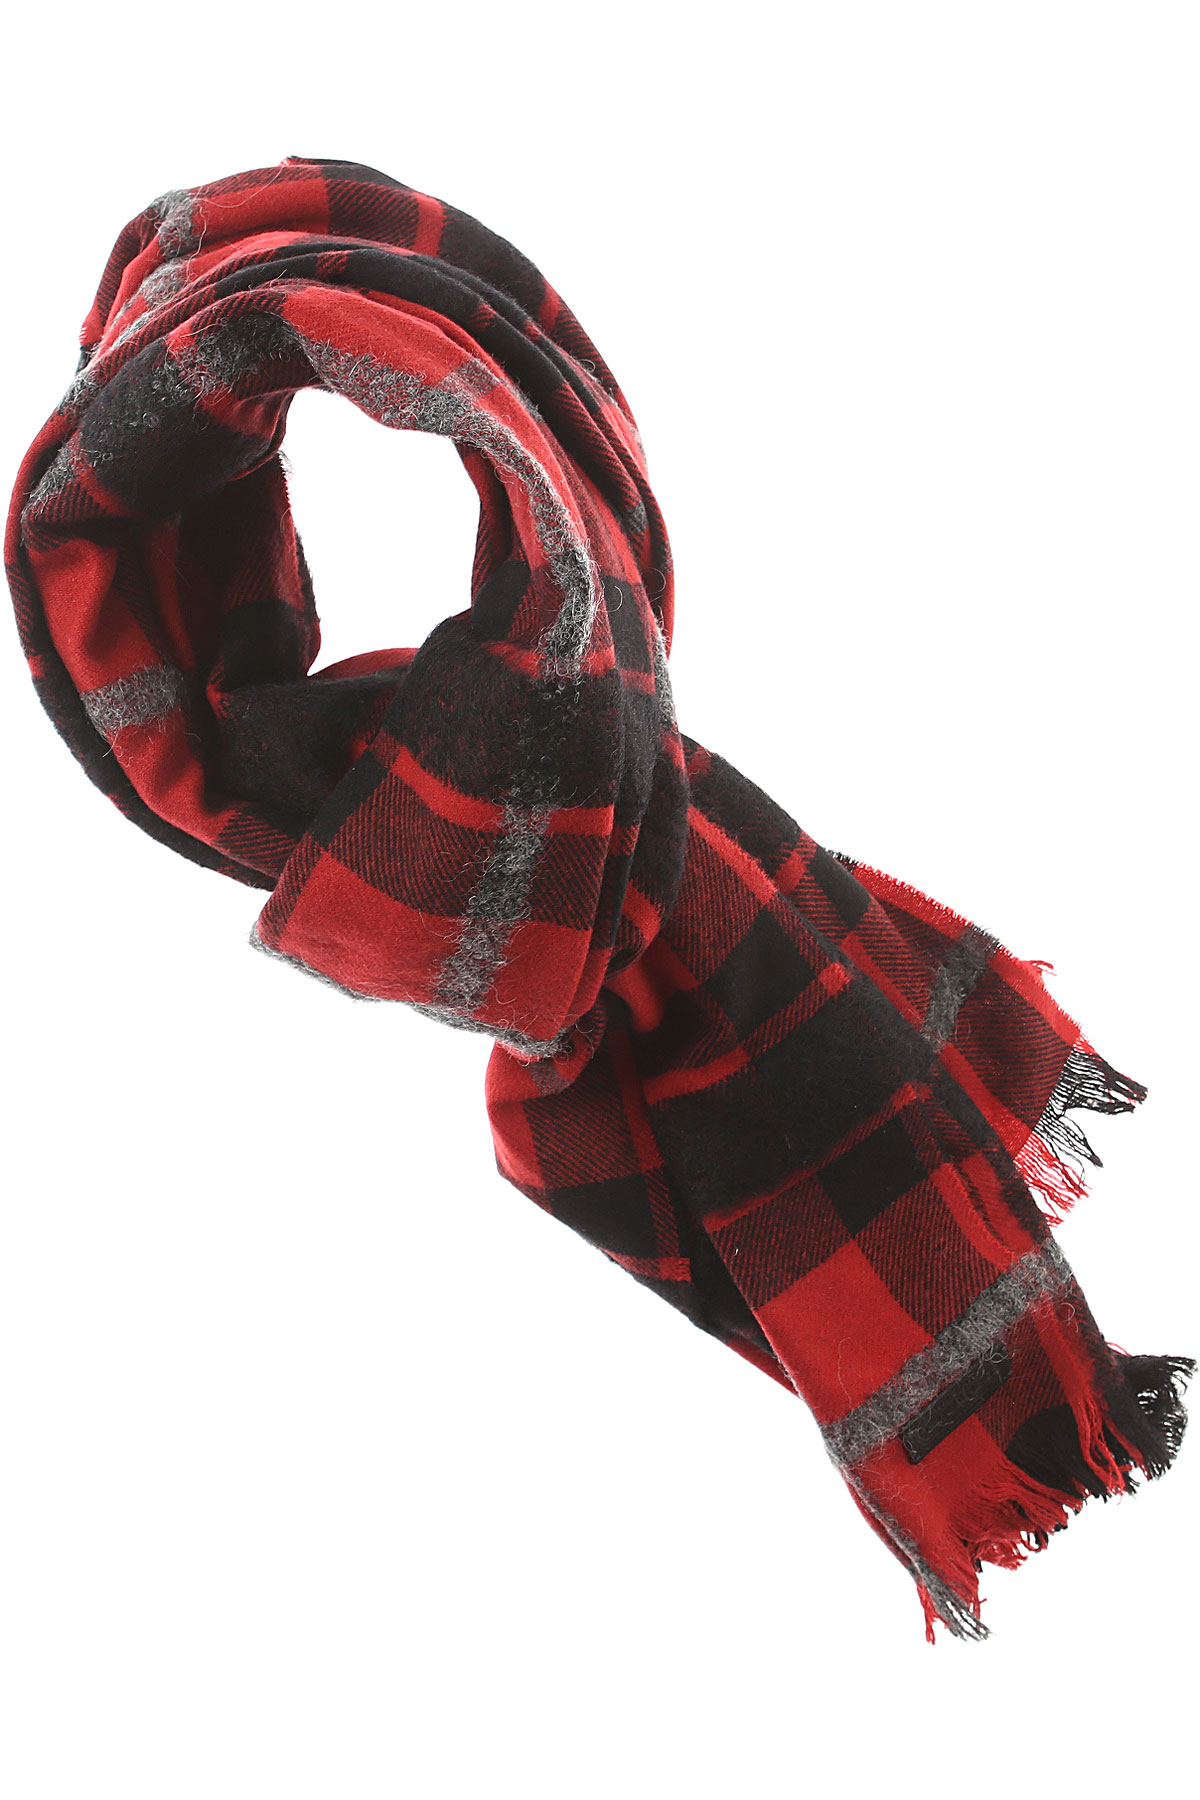 Dsquared2 Scarf for Men On Sale in Outlet, Red, Wool, 2019